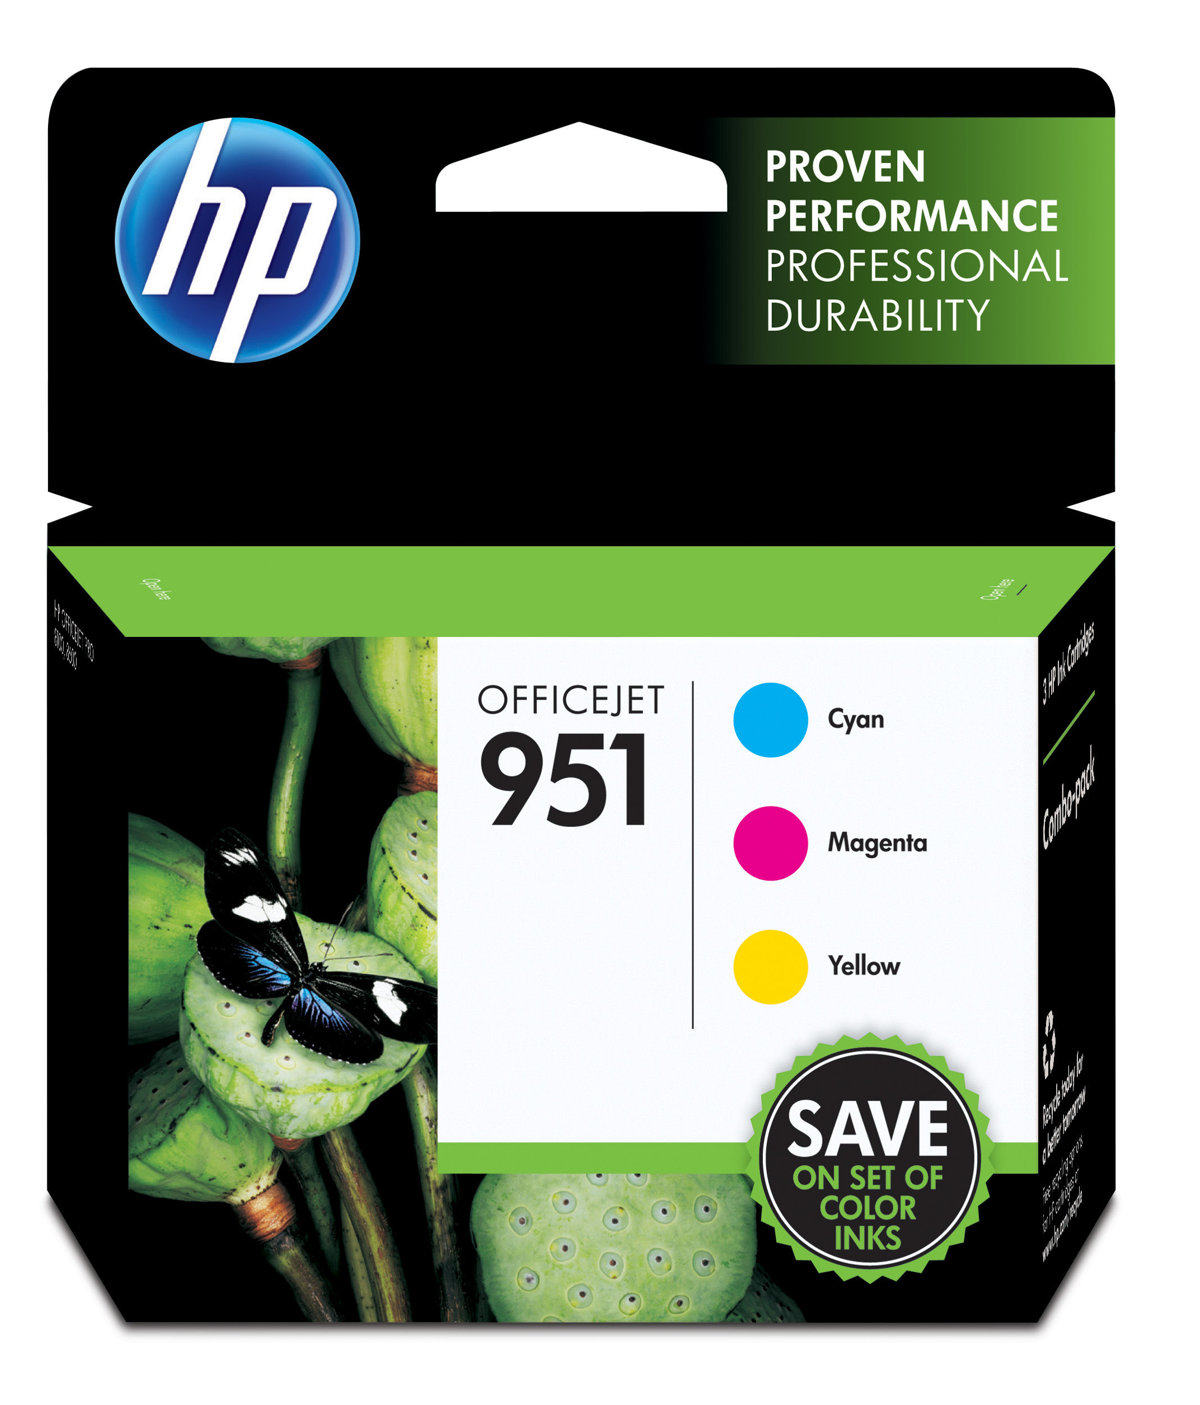 Printer Ink, Printer Toner, Printer Ribbons- Office Depot OfficeMax